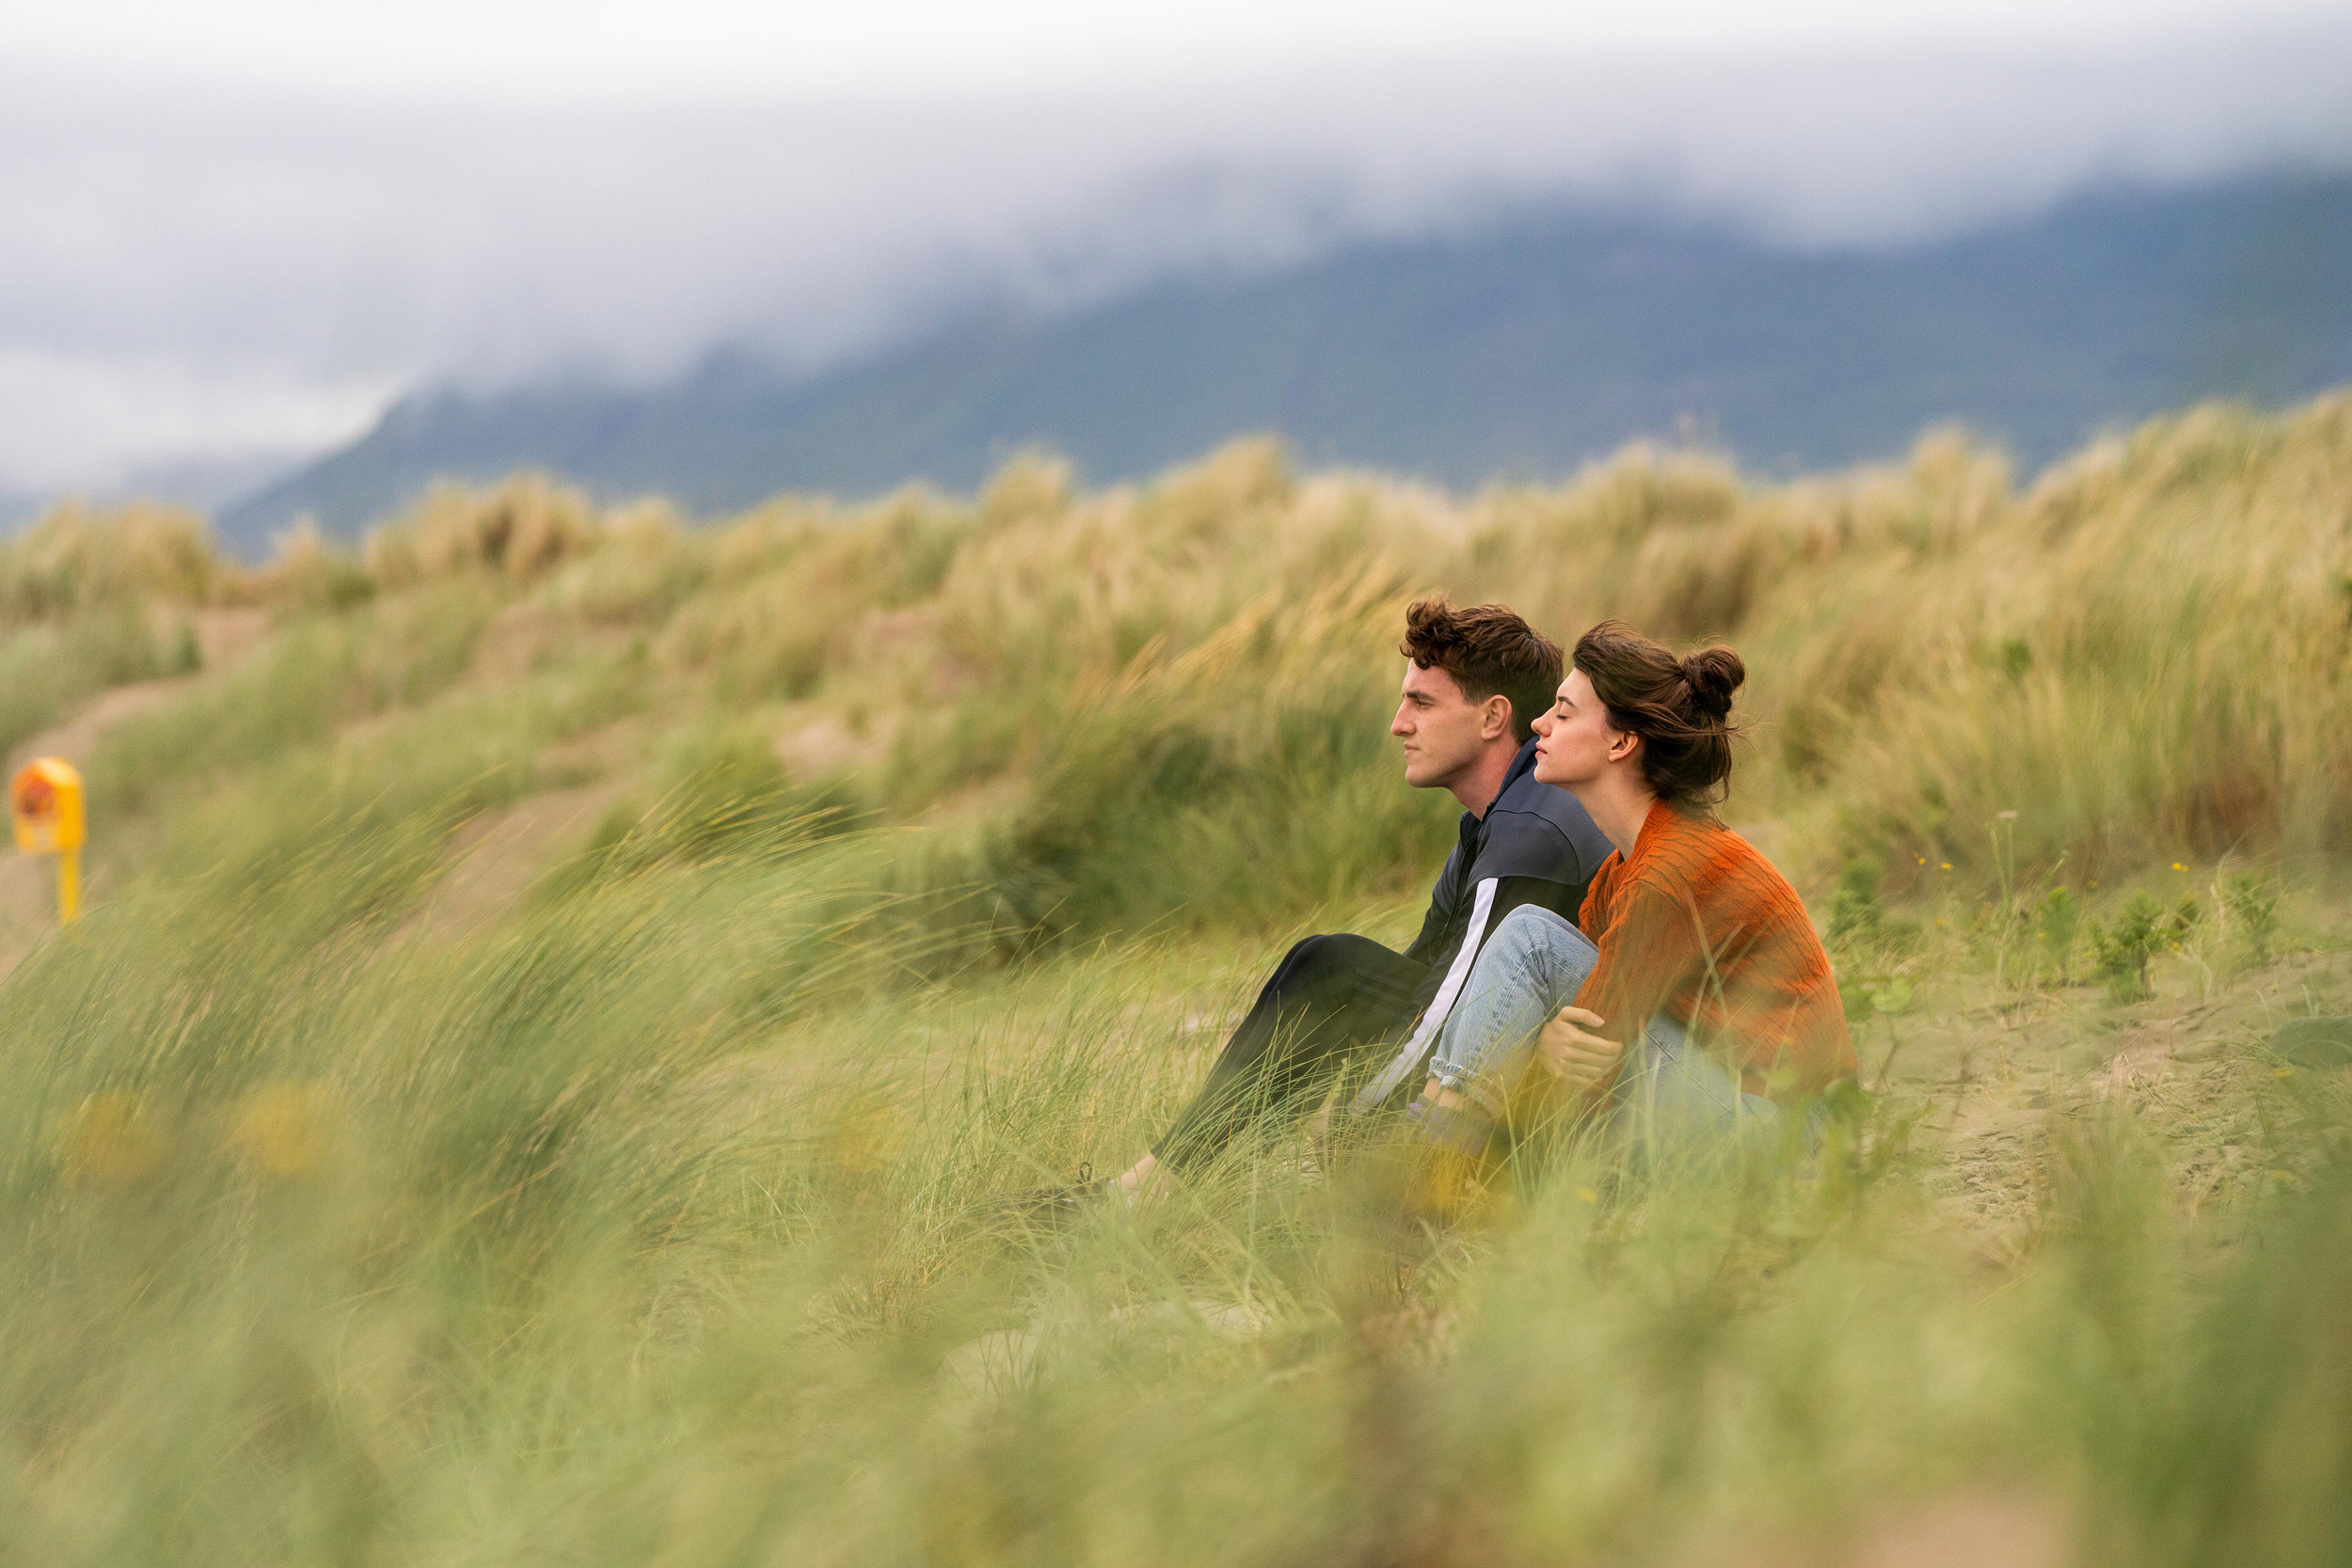 """Actress Daisey Edgar-Jones (as Marianne) and actor Paul Mescal (as Connell) sit together in tall, green grass and face an on-coming wind in this still from the Hulu show """"Normal People."""""""